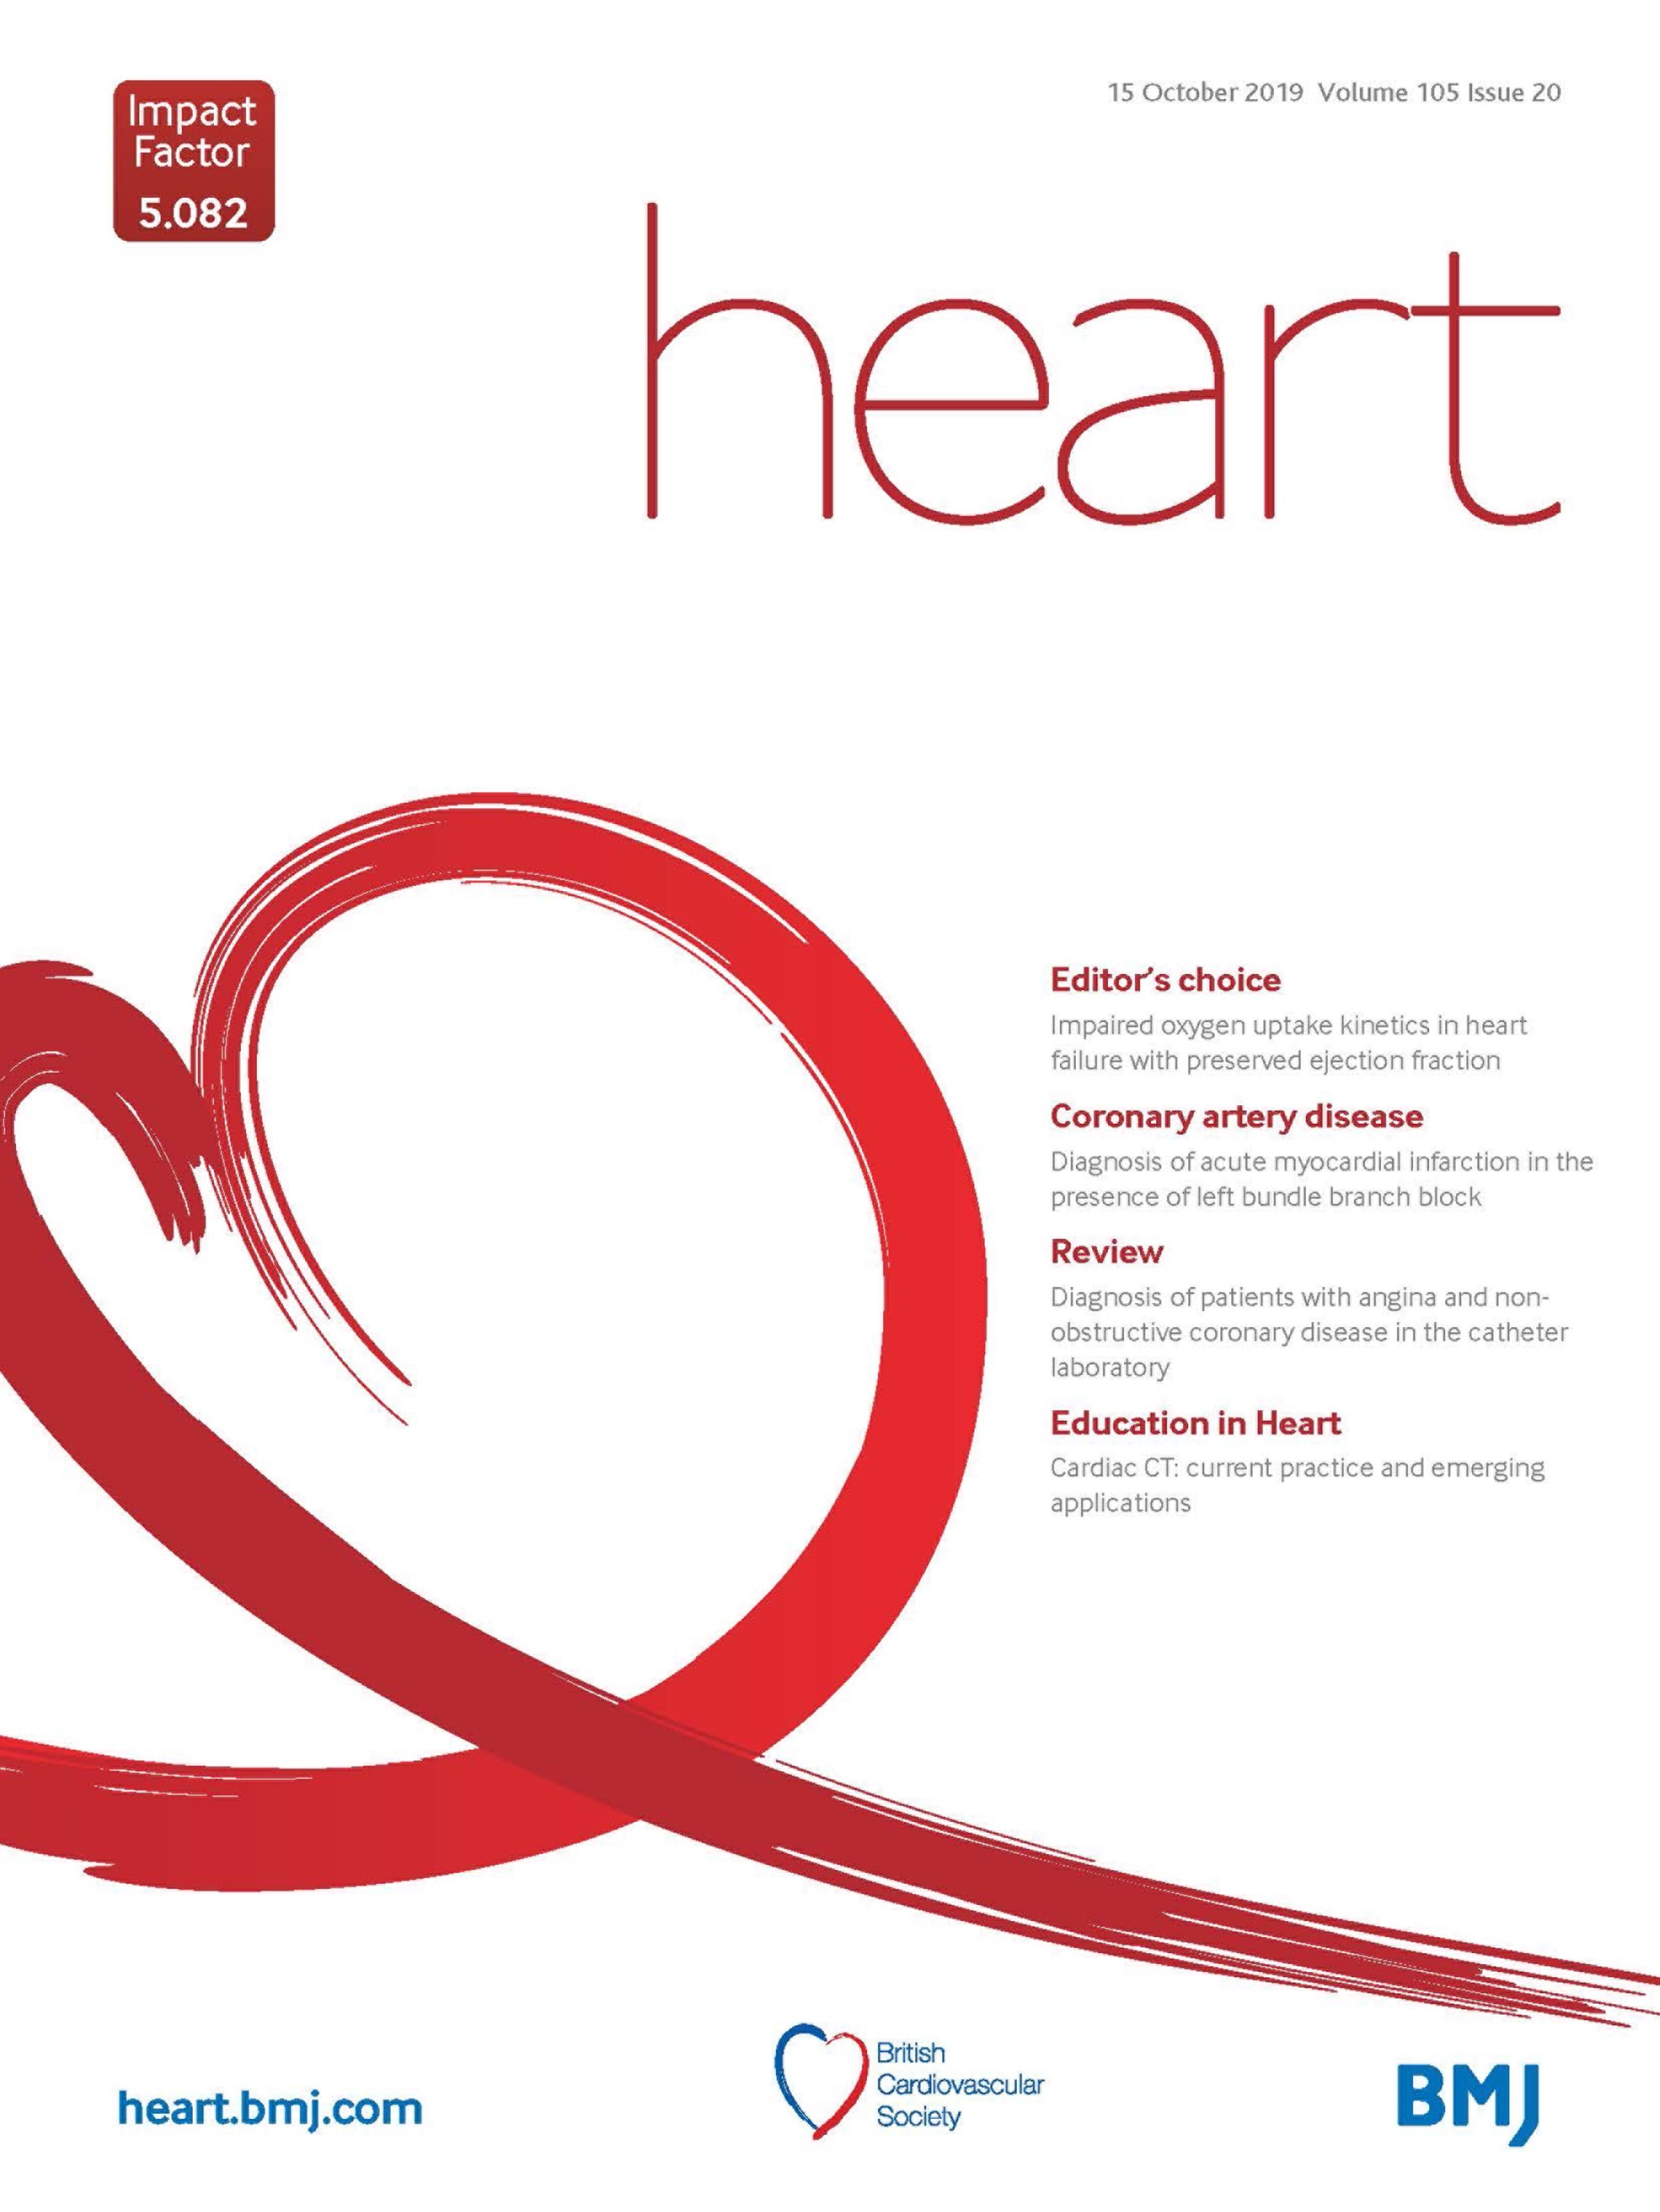 Diagnosis of acute myocardial infarction in the presence of